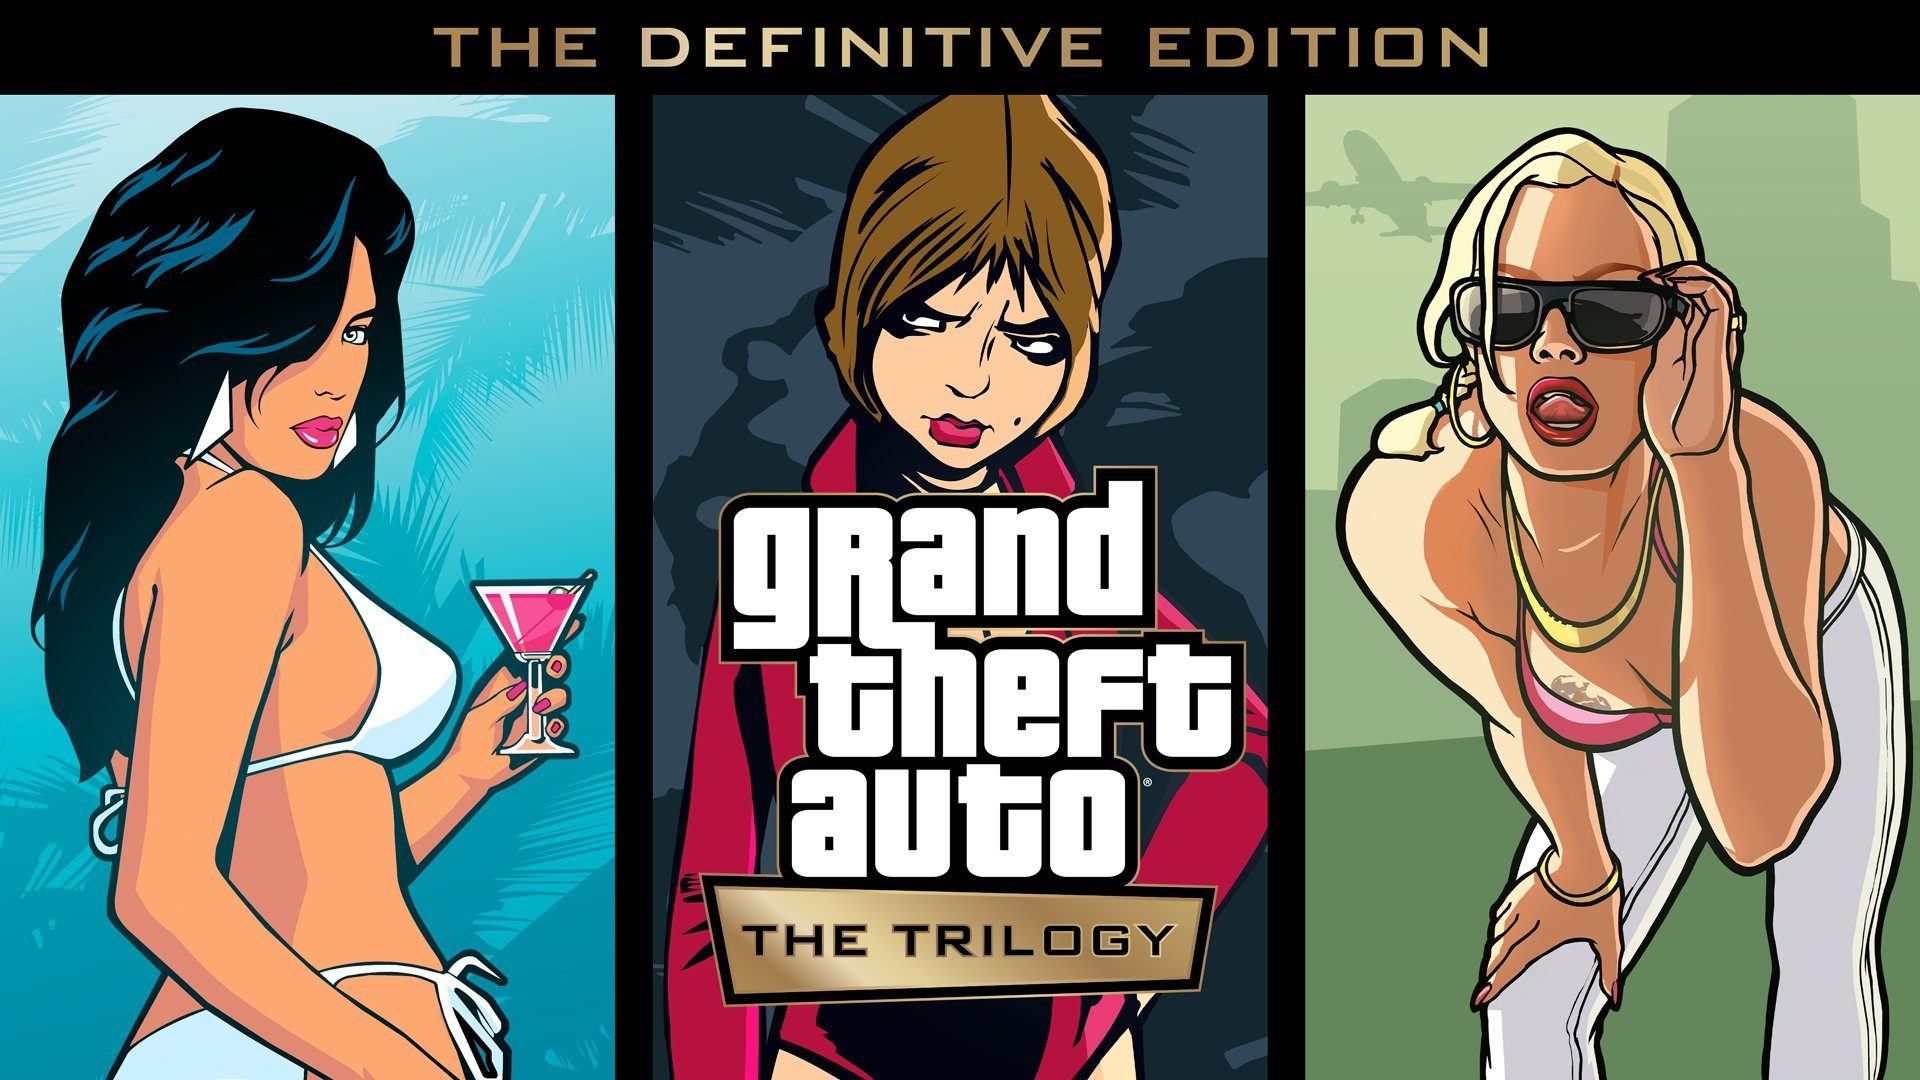 Grand Theft Auto: The Trilogy - The Definitive Edition Releases Next Month, Upgrades & Enhancements Detailed